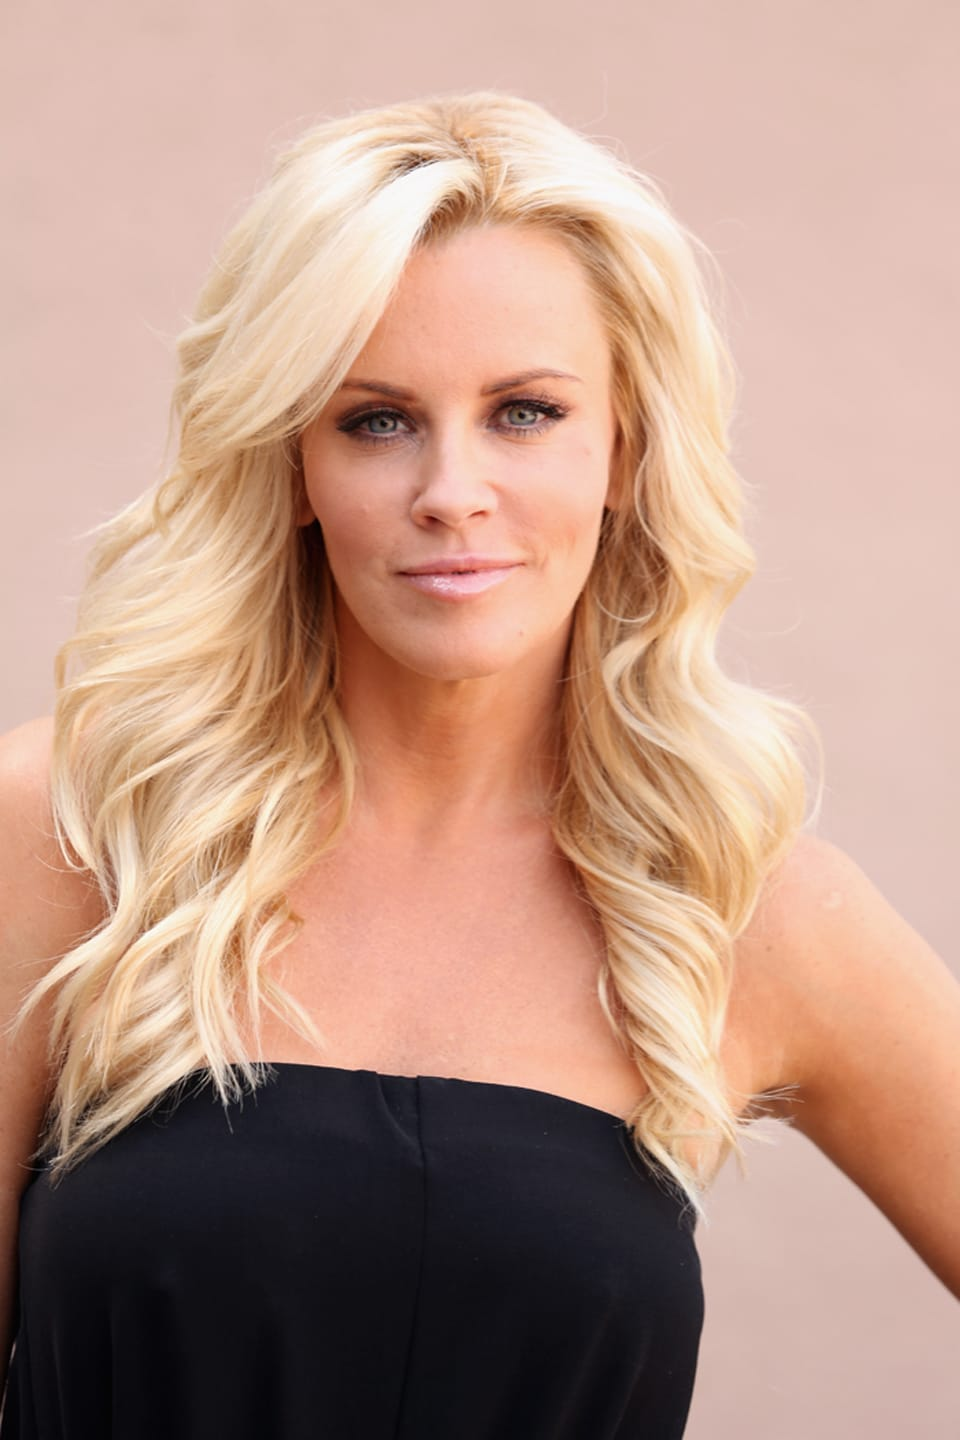 Jenny Mccarthy Porn Video jenny mccarthy, cameron diaz, more stars who started in porn